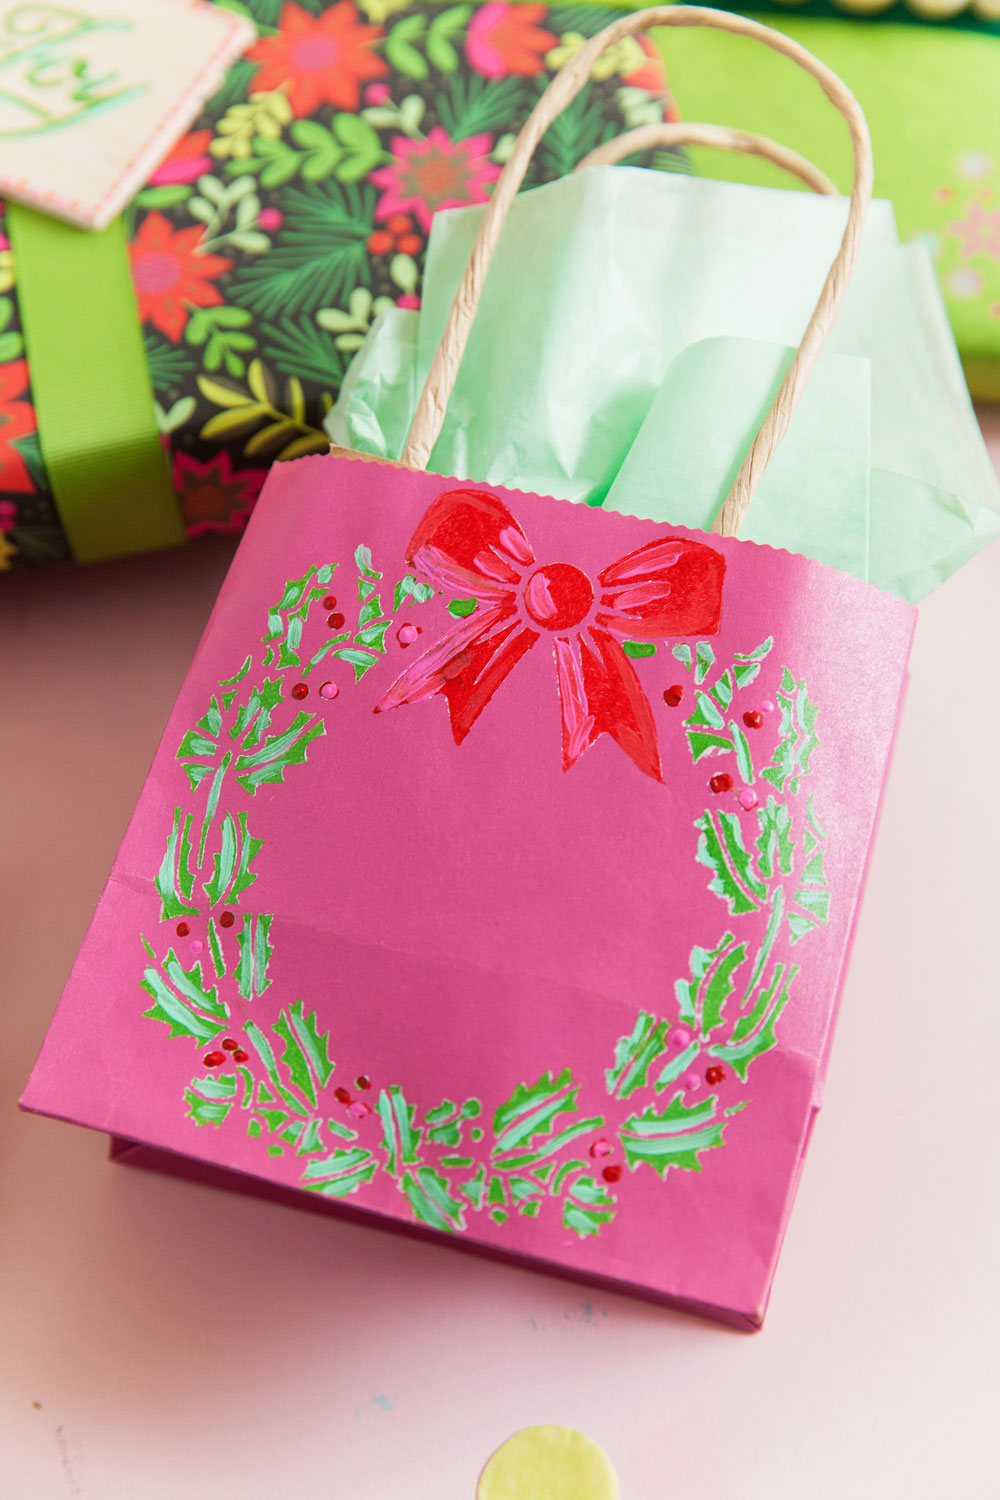 Learn how to make these simple and fun DIY Christmas gift tags